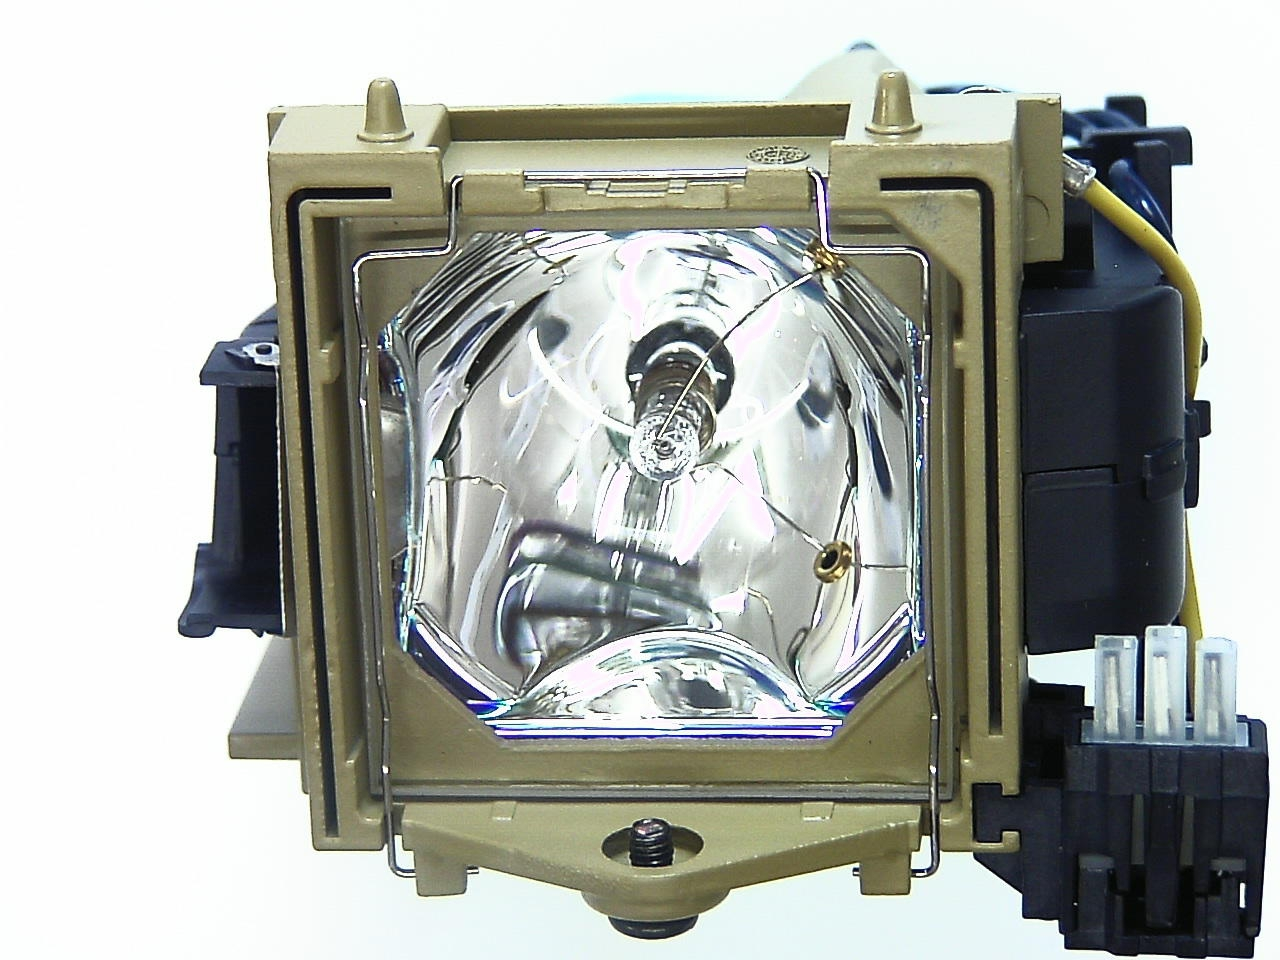 ANDERS KERN ANDERS KERN AST-BEAM X240 Genuine Original Projector Lamp